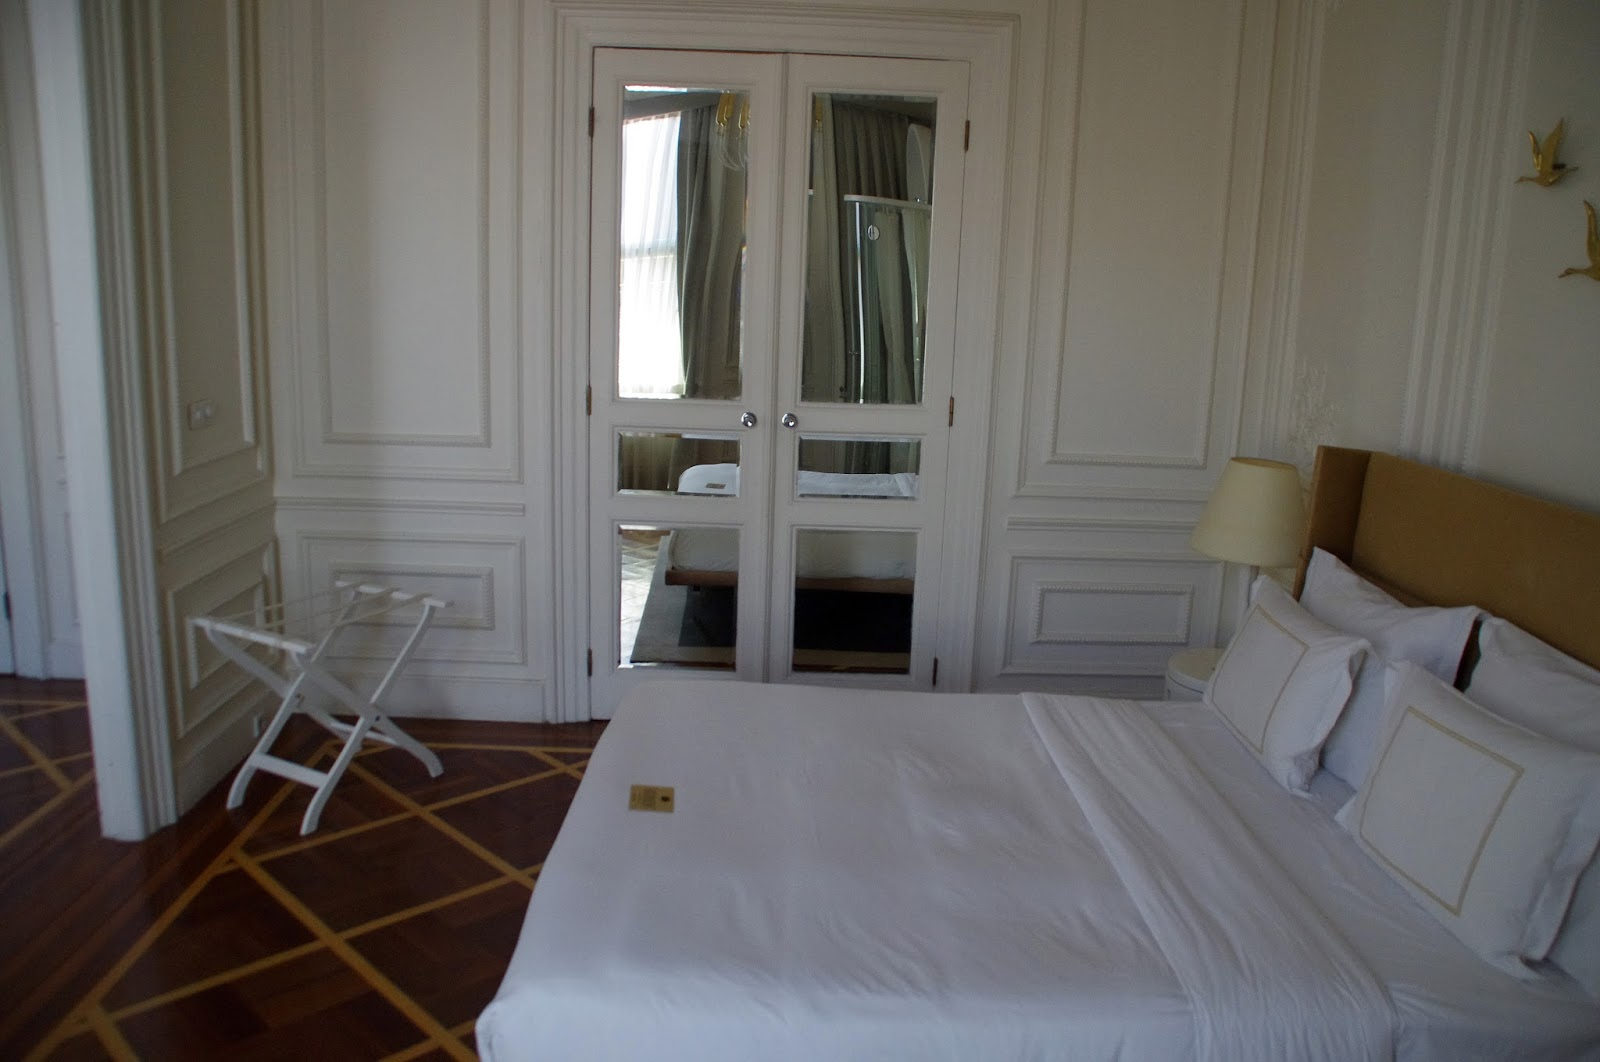 House Hotel Galatasaray Bed